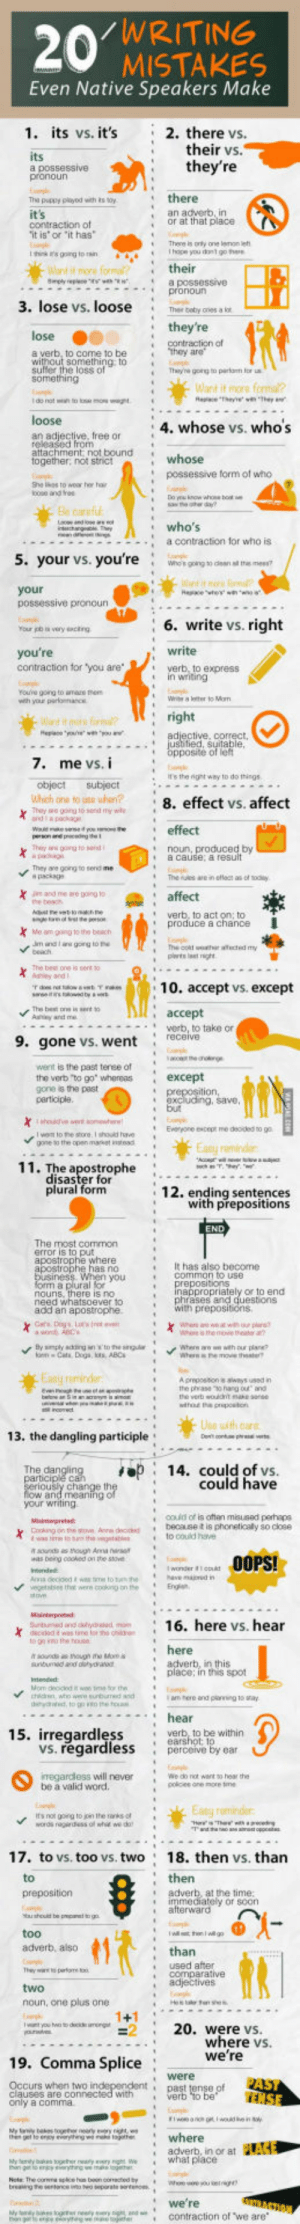 "20 Writing Mistakes Even Native Speakers Make: /WRITING  MISTAKES  Even Native Speakers Make  1. its vs. it's 2. there vs.  their vs.  its  an adverb, in  or at that place  contraction ot  it is or ""it has  There is only one lemon le  I think i's going io  their  3. lose vs. looseey Ce  they're  a verb, to come to be  sufer the loss of  Mant it ore foma?  : 4. whose vs. whos  an adjective, free or  released from  attachment not bound  together, not strict  '  possessive form of who  a contraction for who is  5. your vs. you're  6. write vs. right  re  contraction tor 'you areverb to express  going to amare em  d it m  7. me vs.  s the ogt way to do things  object subject  : 8, effect vs. affect  χ Troy ""packaU16 send mywle  They ave going to sernd ime  verb, to act on: to  produce a c  om gong to the beech  10. accept vs. except  accept  -  werb, to take or  9. gone vs. went receive  went is the past teree of  the verb ""to go"" whereas except  e the past  Everone excep me deoided 0g0  disaster for  plural form  12. ending sentences  with prepositions  The most common  error is to put  It has also become  common to use  rophe has no  When you  appropria  or to end  Cets Doga,lotS ABC  Easy reminder  13. the dangling participle  The da  14. could of vs.  n could have  your writing  coud of is aten misused pehaps  to couild have  eoetsbles thaer were cooling on tEna  : 16. here vs. hear  adverb, in this  place; in this spot  chichin who were sunburned  andam here and  the fo  15. irregardless  to be within  vs. regardless perceve by ear  will naveroone micte se  be a valid word.  17. to vs. too vs. two· 18"" then vs. than  to  then  immediately or scon  i  too  adverb, also  than  used after  comparative  noun, one plus one  2 20. were vs  where vs.  we' re  19. Comma Splice  were  Occurs when two  clauses are C  , adverb, in or at PLEV  what place  re  n acontraction of 'we are 20 Writing Mistakes Even Native Speakers Make"